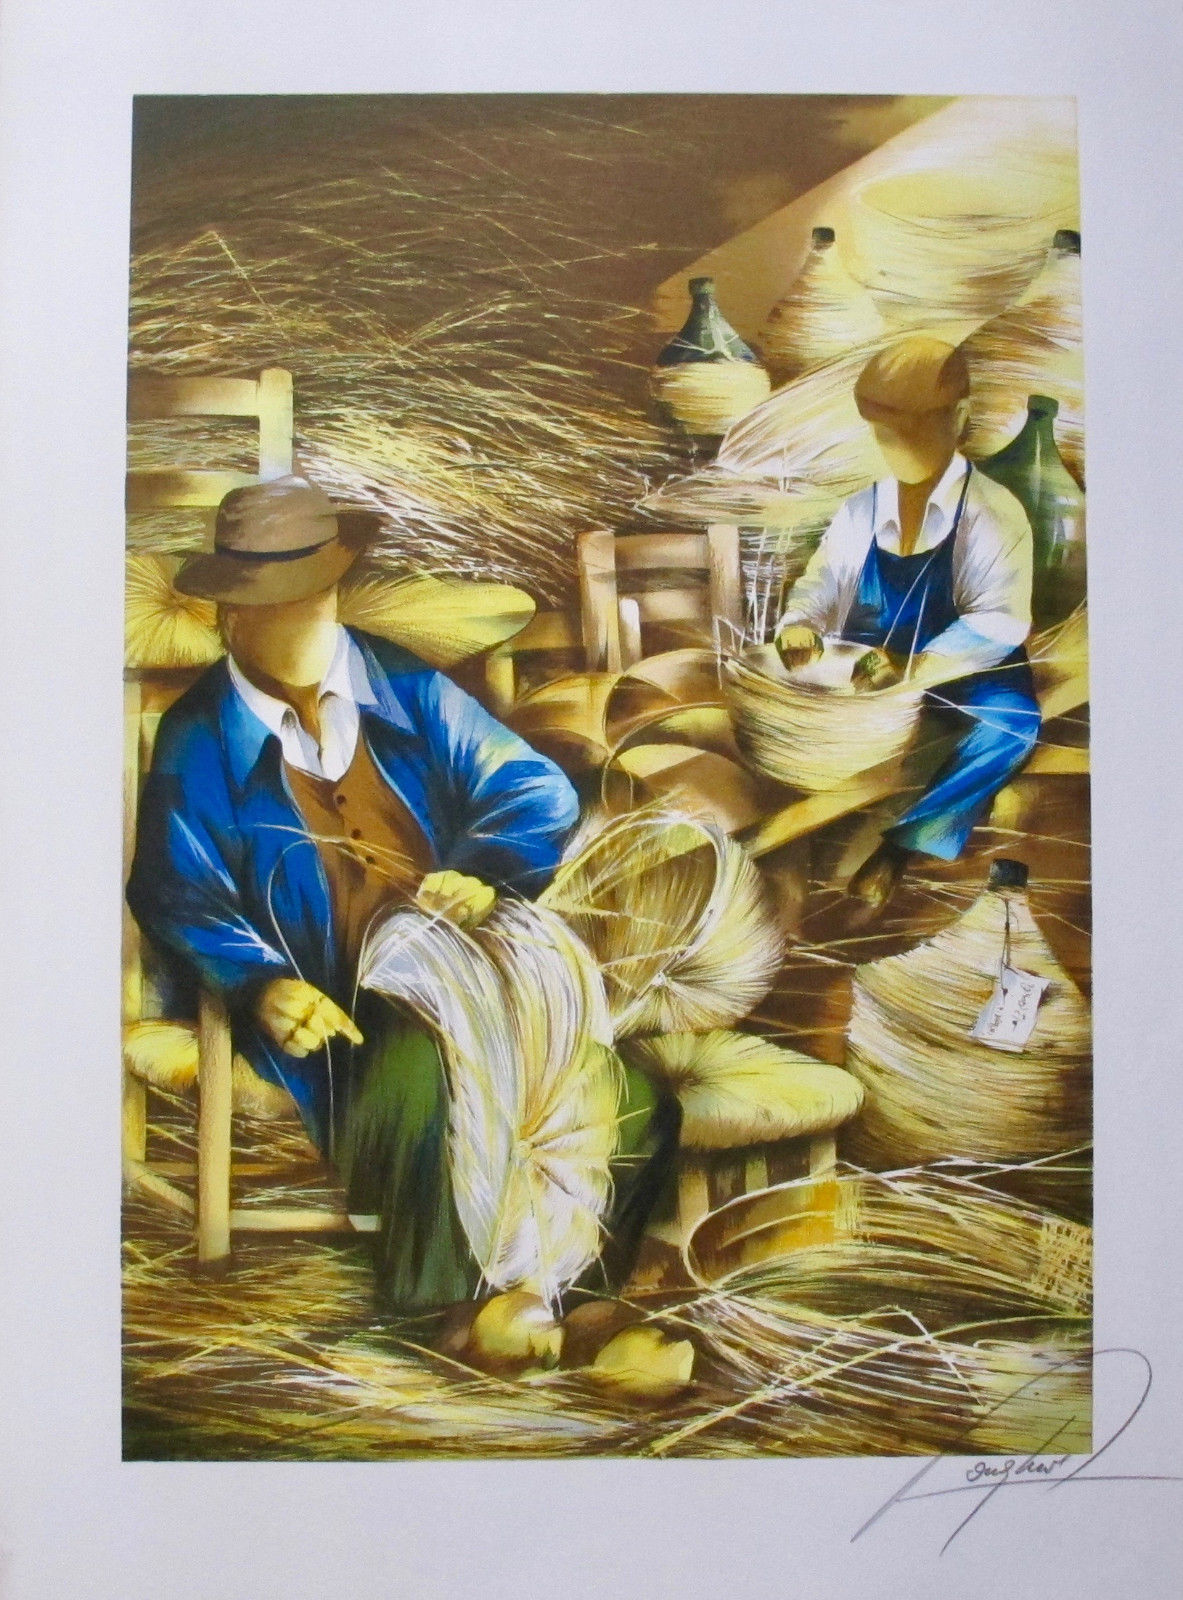 RAYMOND POULET BASKET WEAVING Hand Signed Limited Edition Lithograph